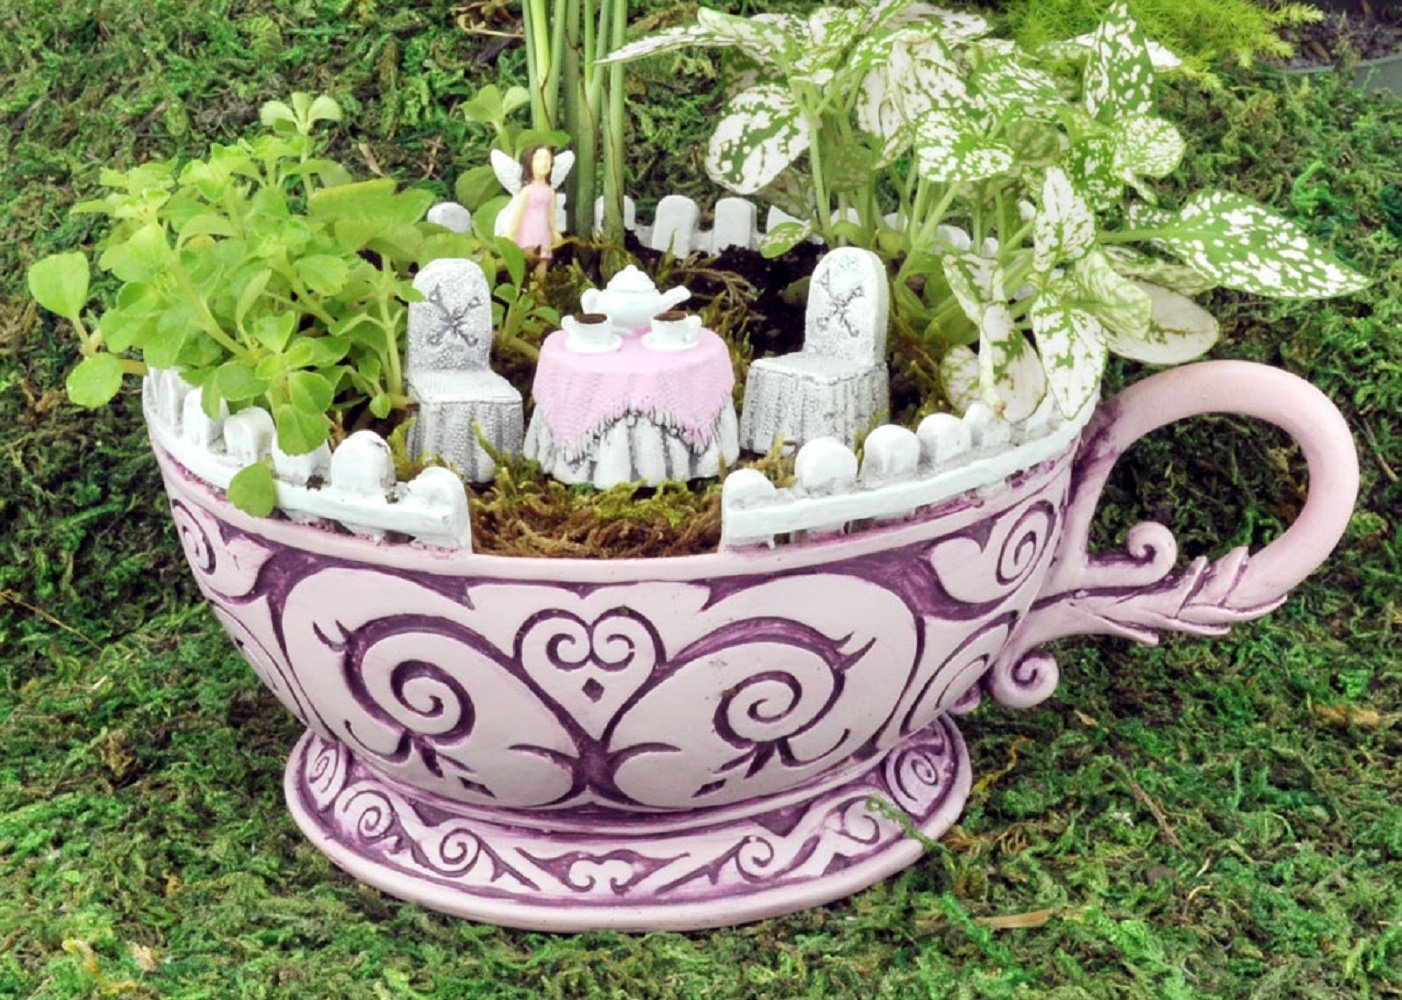 Get Quotations · Georgetown Home U0026 Garden, Fiddlehead Fairy Garden, Pink  Teacup Planter And Accessory Set.